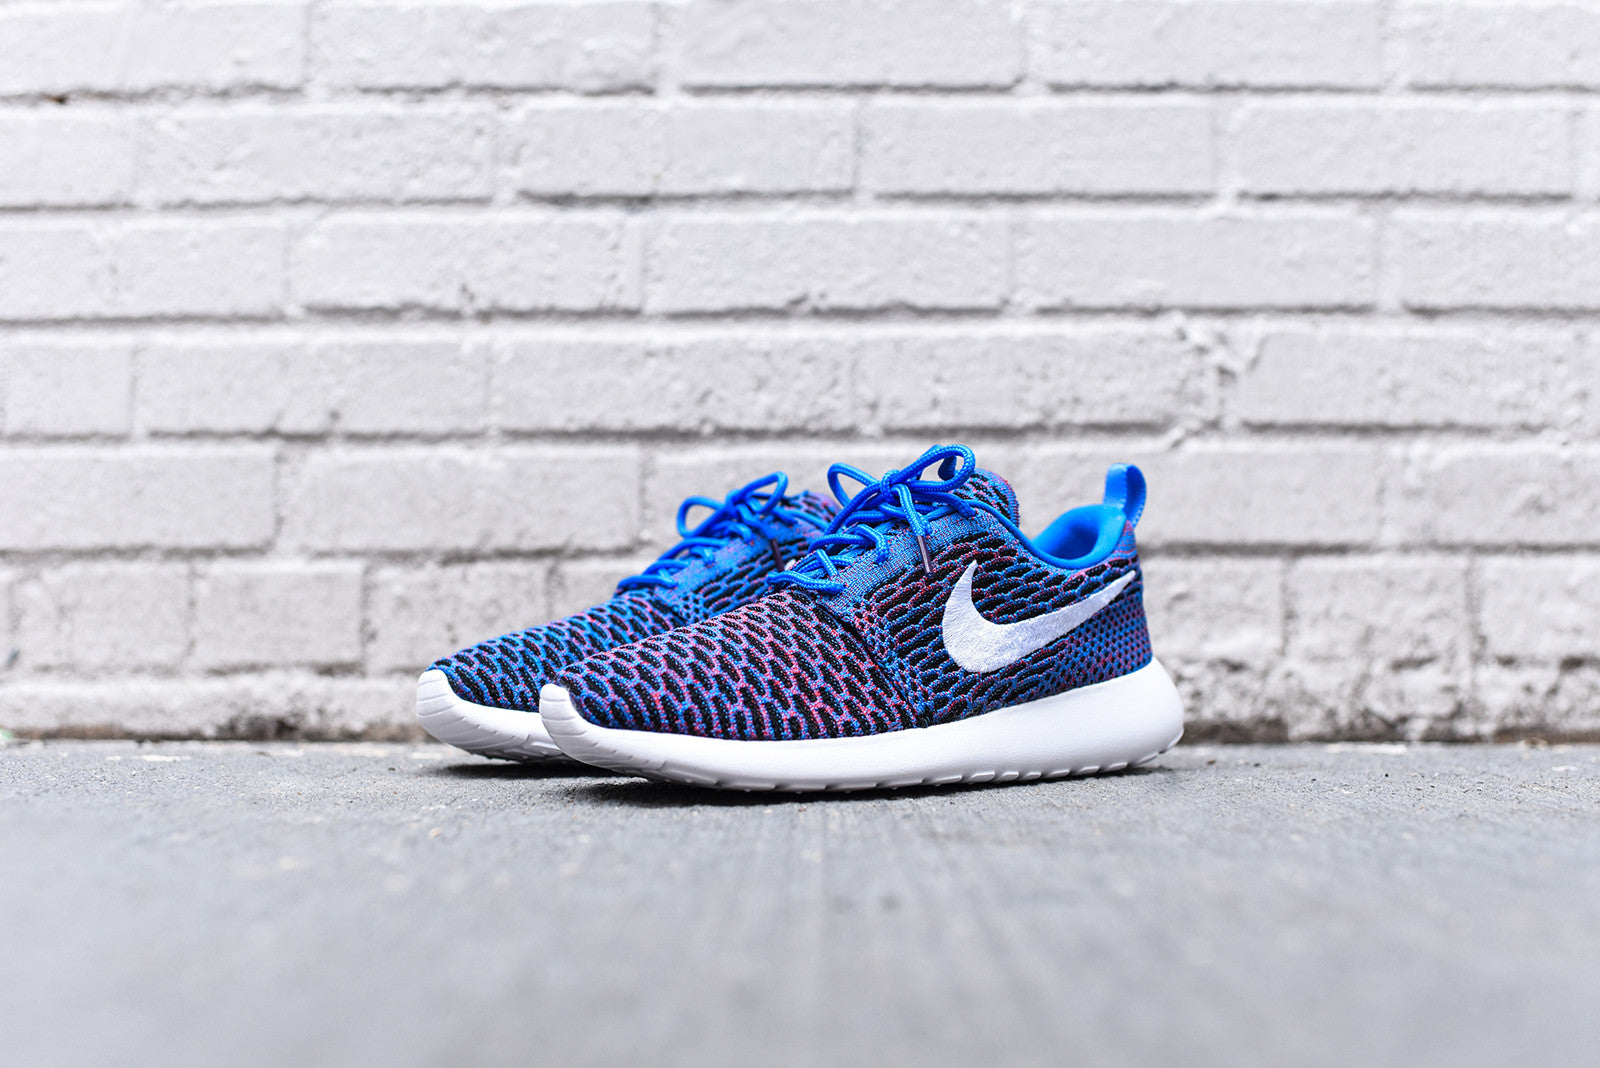 Nike WMNS Roshe One Flyknit - Blue / White / Red